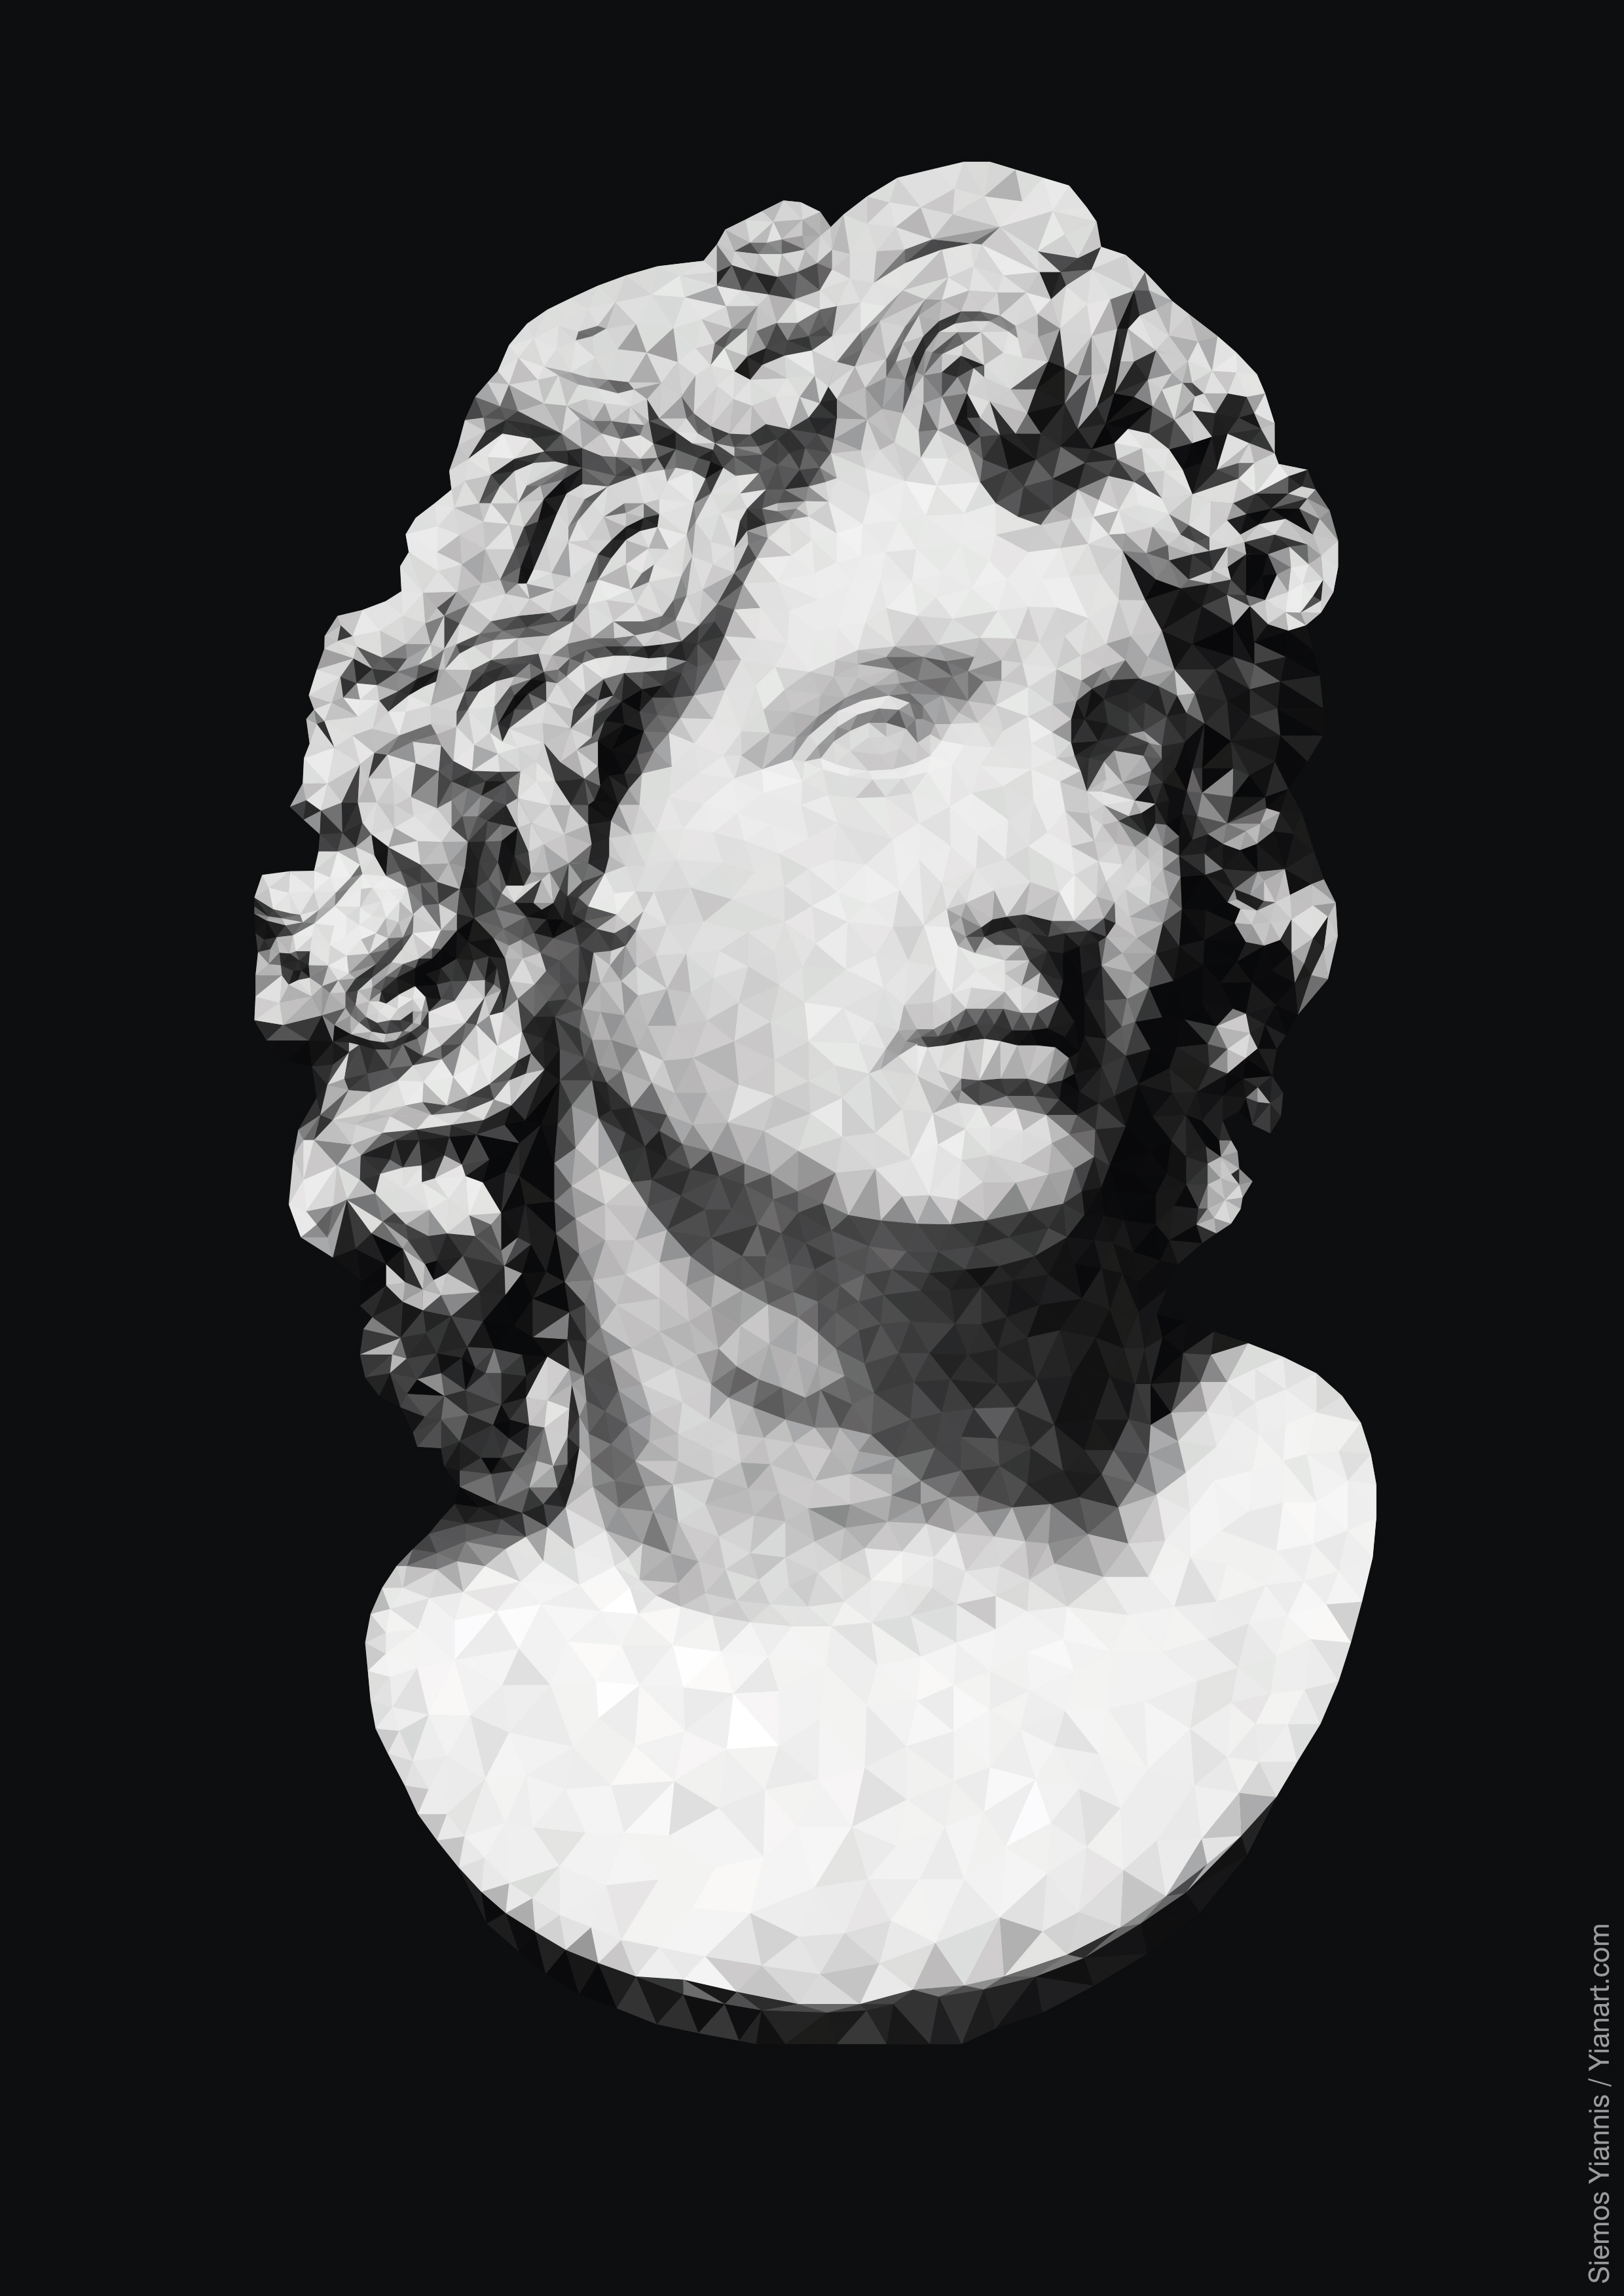 Alexander the Great_Yianart.com